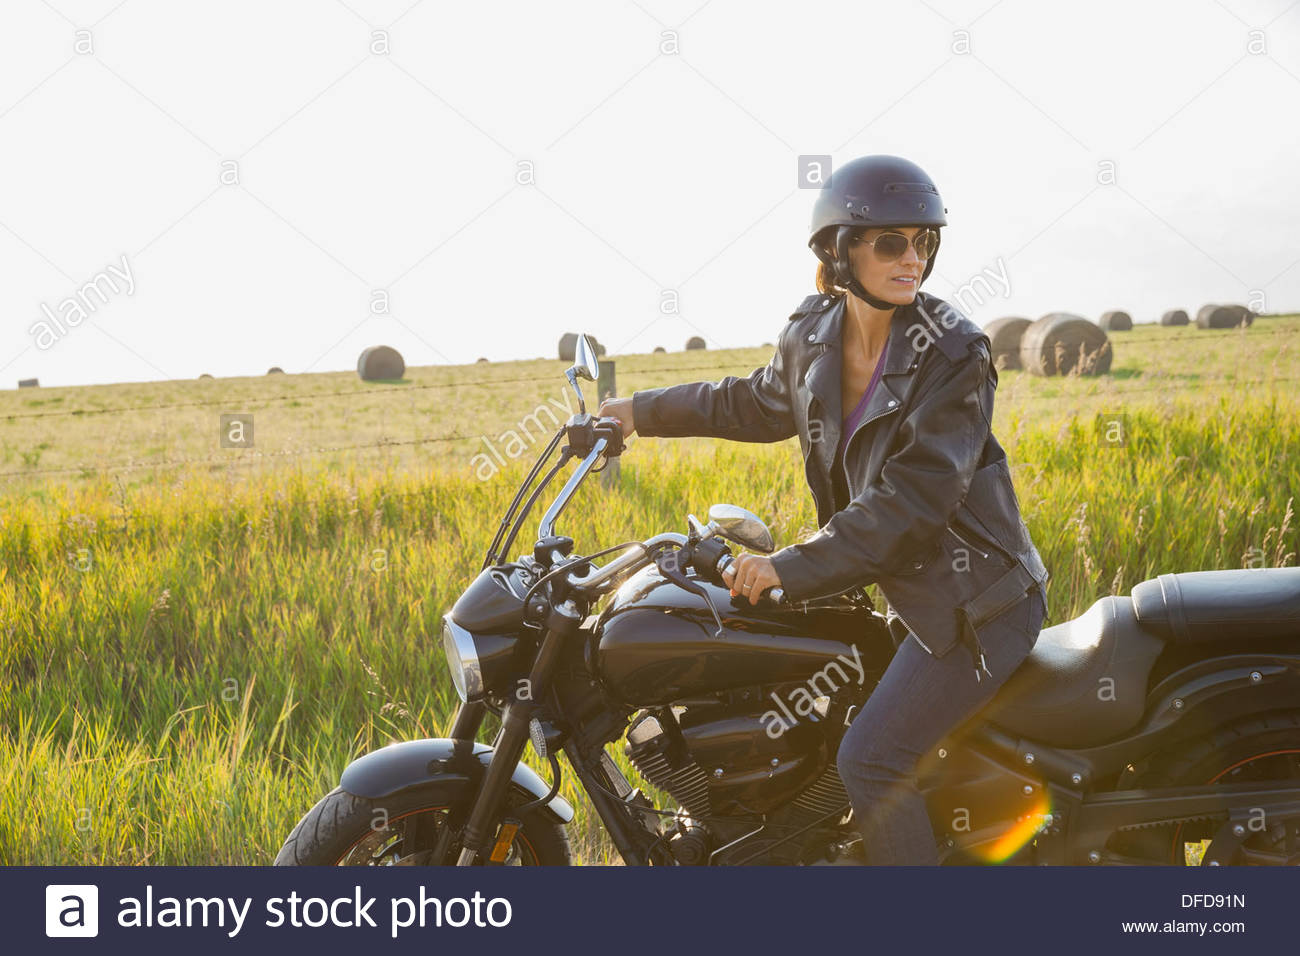 Woman sitting on motorcycle outdoors - Stock Image